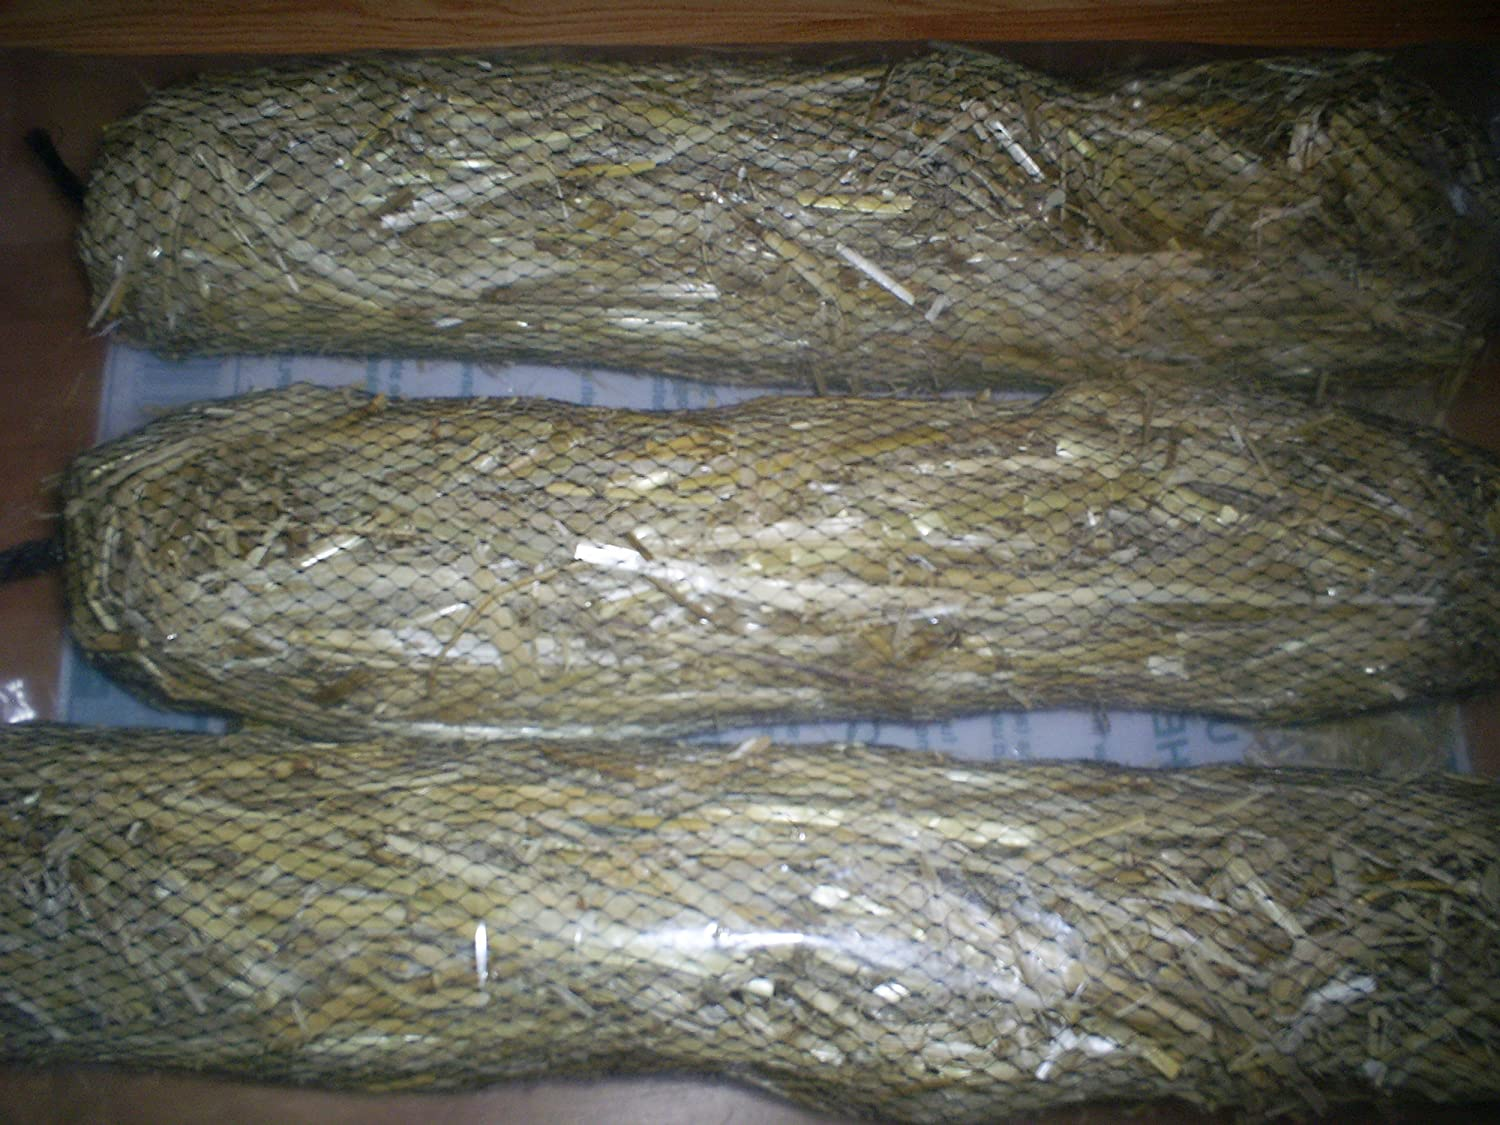 Ppi 3 Pack Of Barley Straw For Algae In Ponds Garden Yamitsu 4 Way Switch Box Outdoors